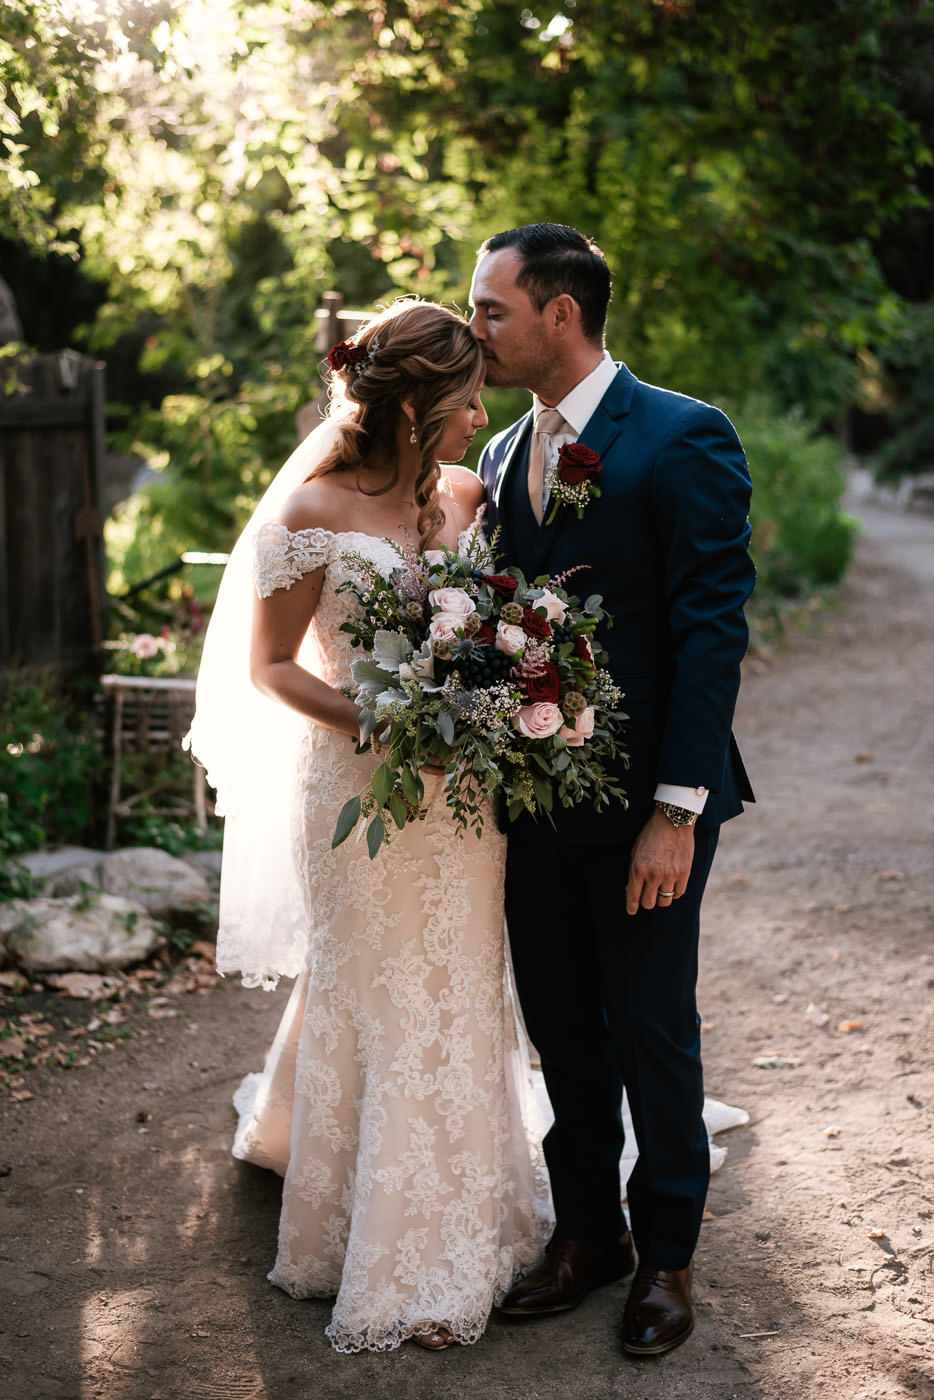 Best wedding photographers in Southern California.